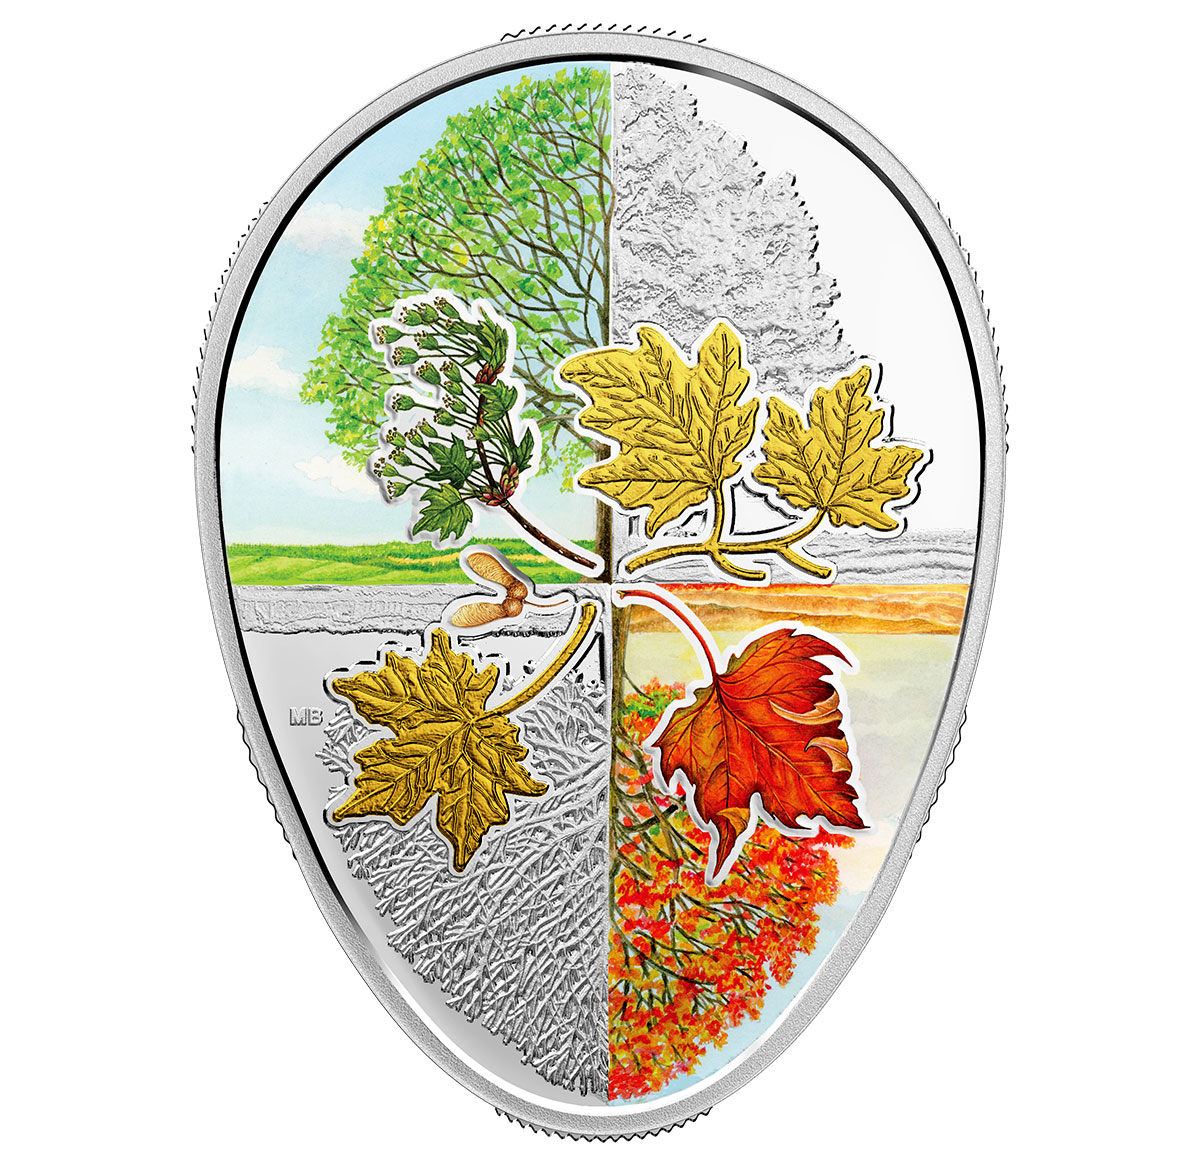 2018 Canada Four Seasons of the Maple Leaf Egg Shaped 1 oz Silver Gilt Proof $20 Coin GEM Proof OGP